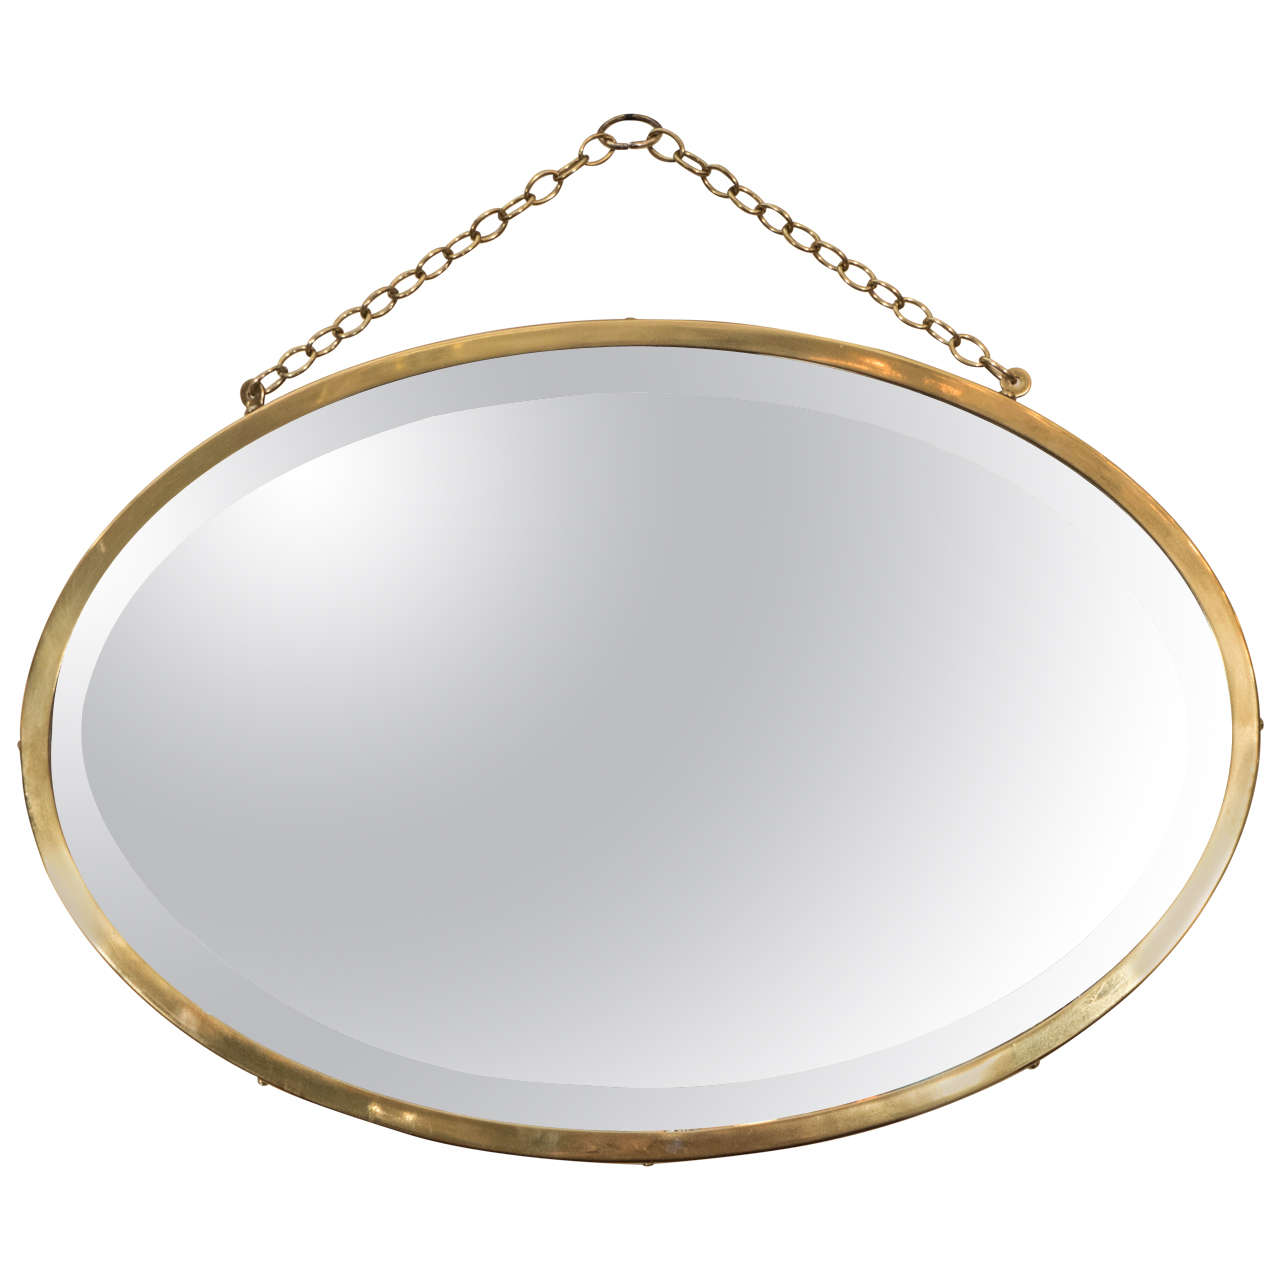 Midcentury oval brass framed beveled glass wall mirror at for Glass mirrors for walls